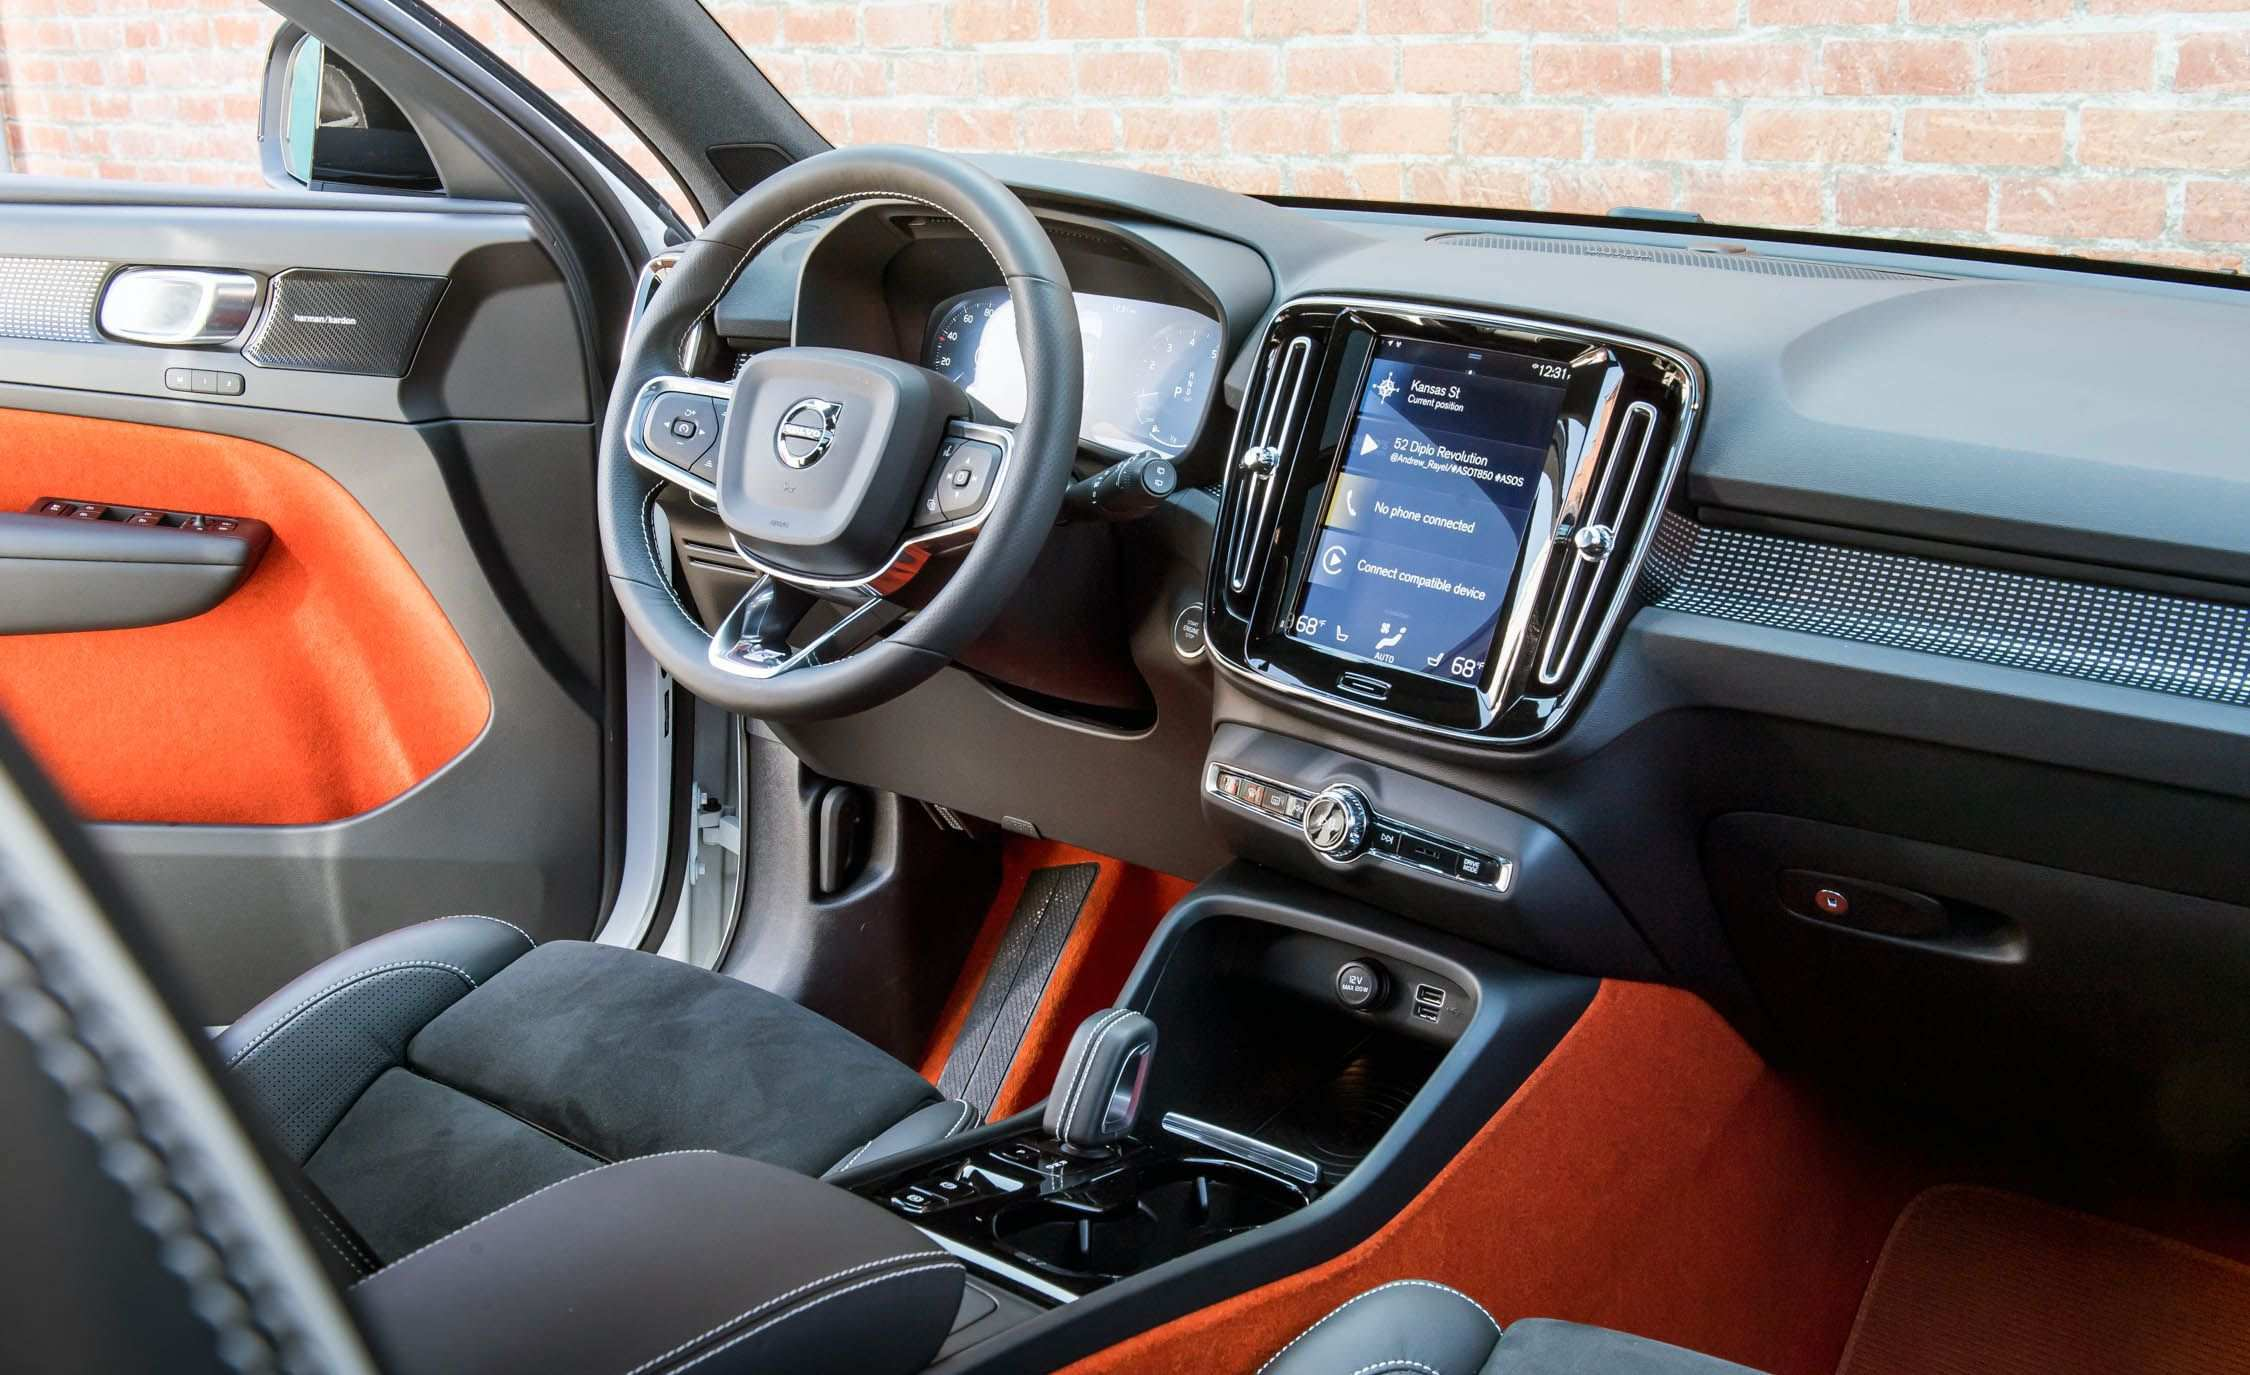 47 Best Review 2019 Volvo Xc40 Interior Prices for 2019 Volvo Xc40 Interior